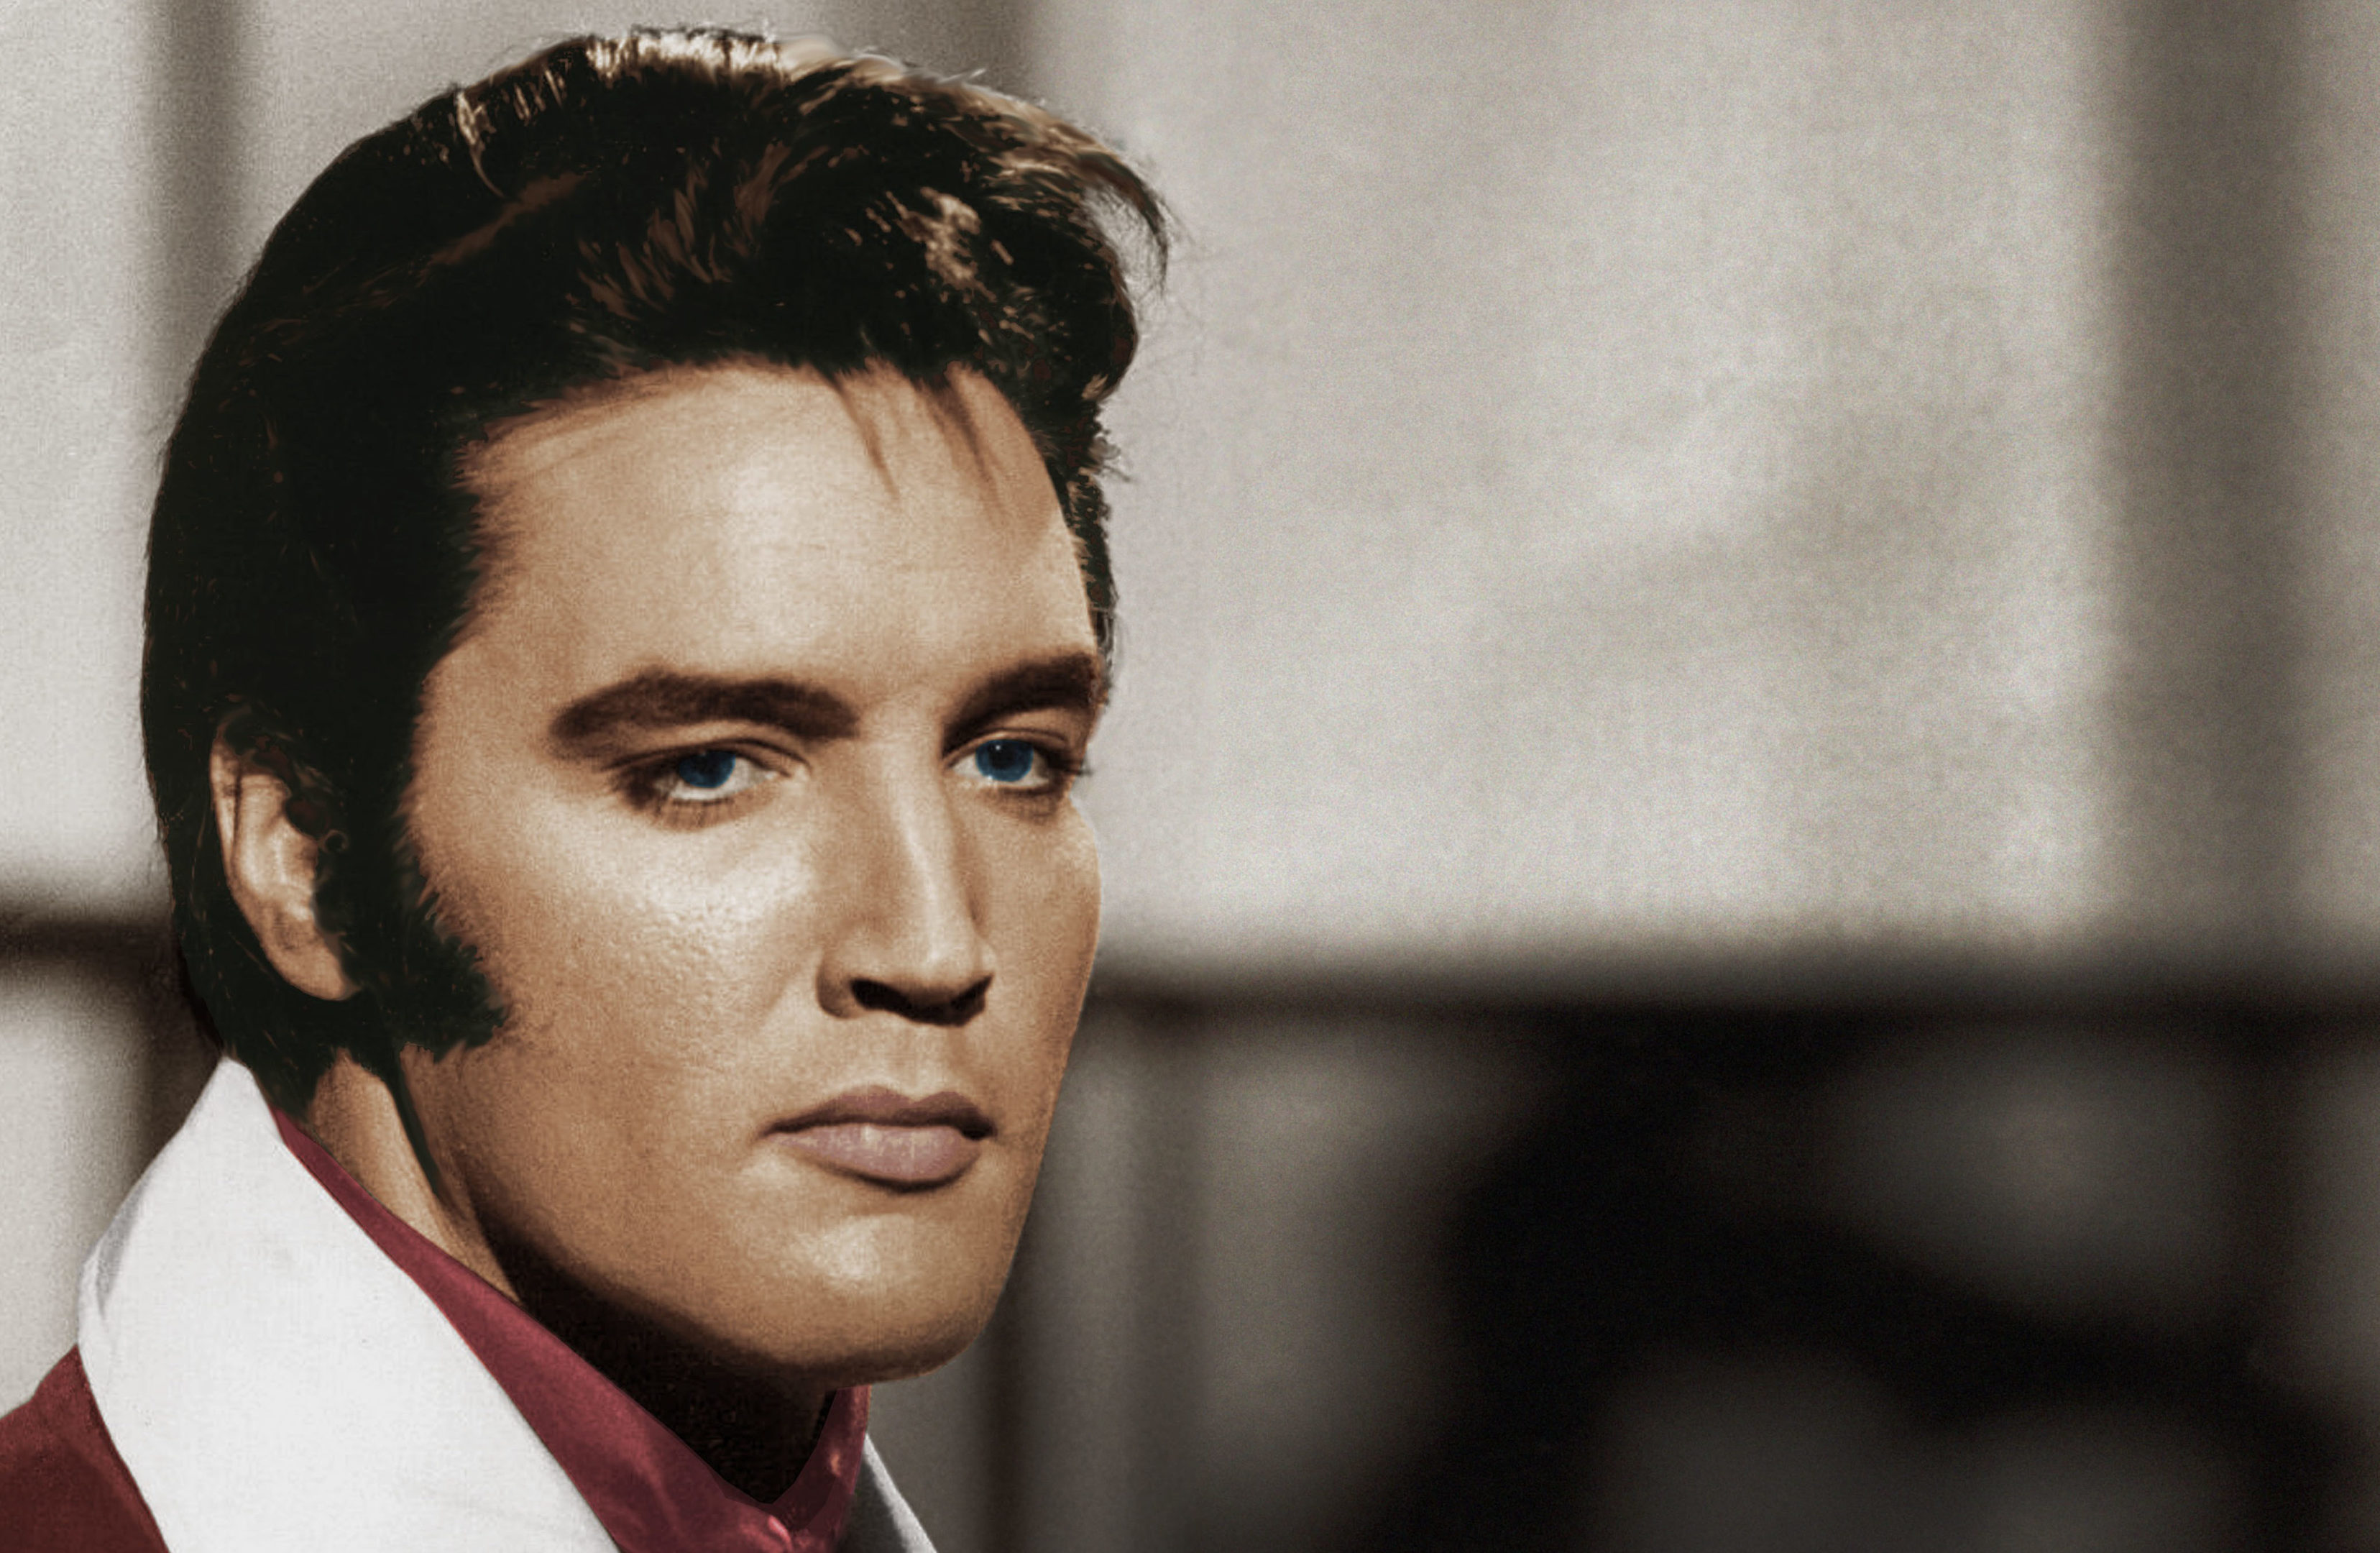 The new record is being released to celebrate Presley's love of gospel music (Elvis Presley Enterprises/PA Wire)